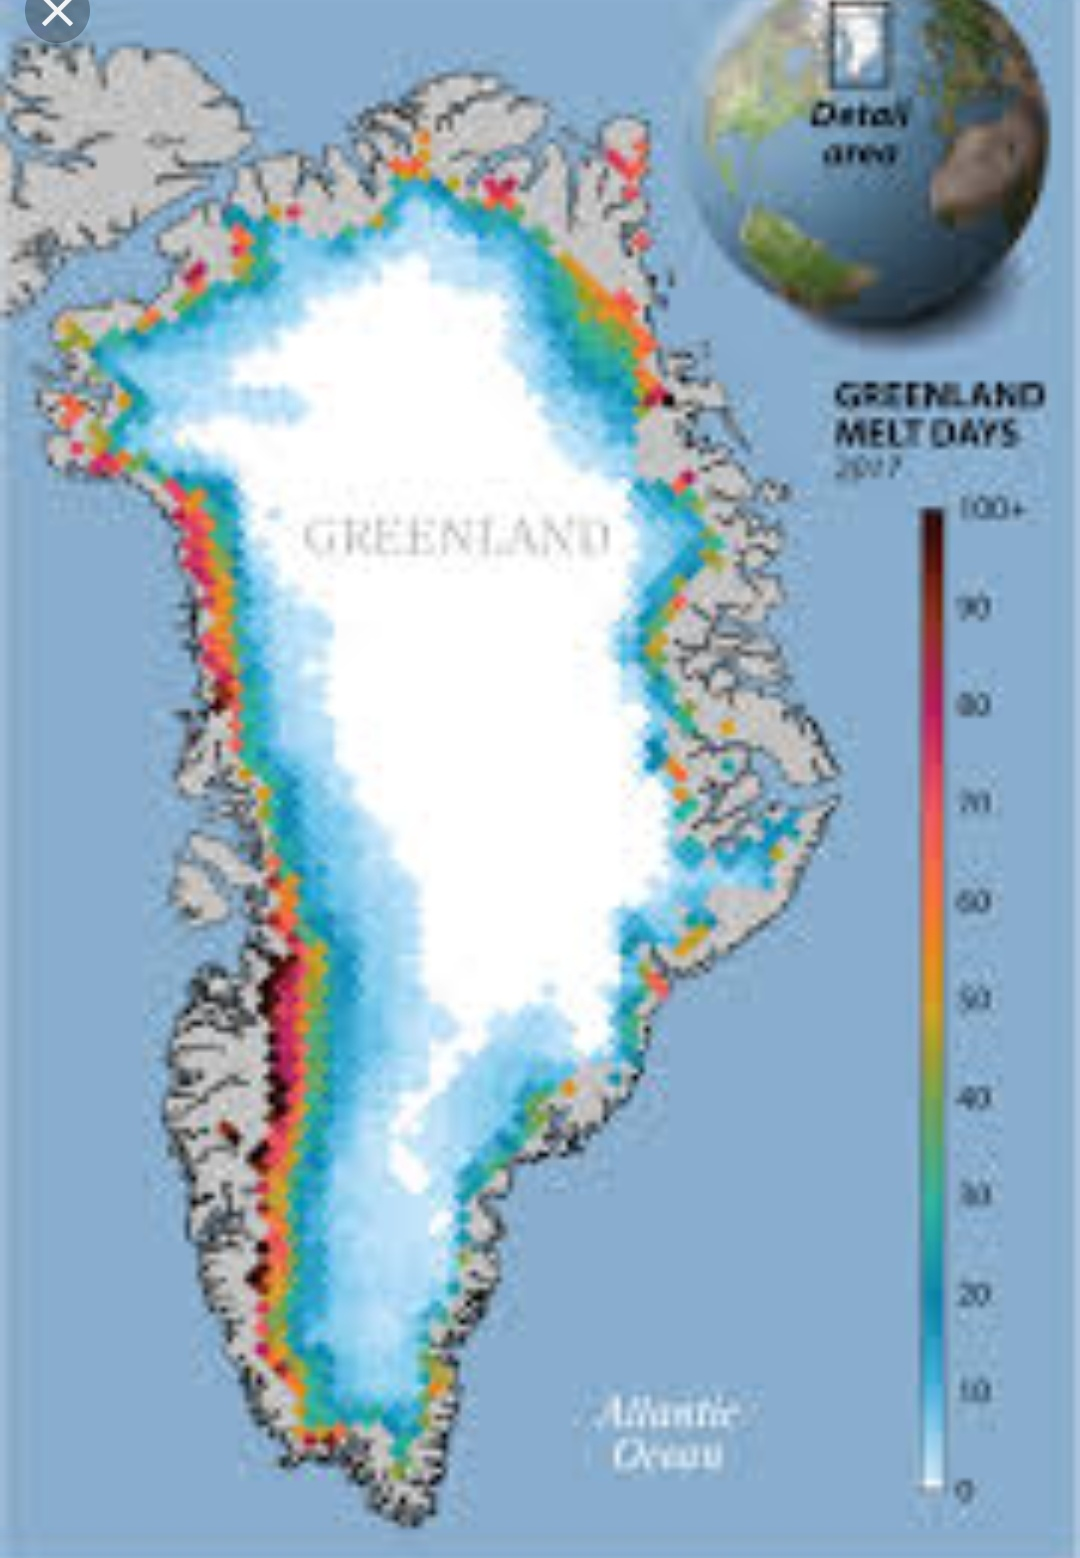 The only thing we can do is adapt': Greenland ice melt reaching 'tipping point,' study finds